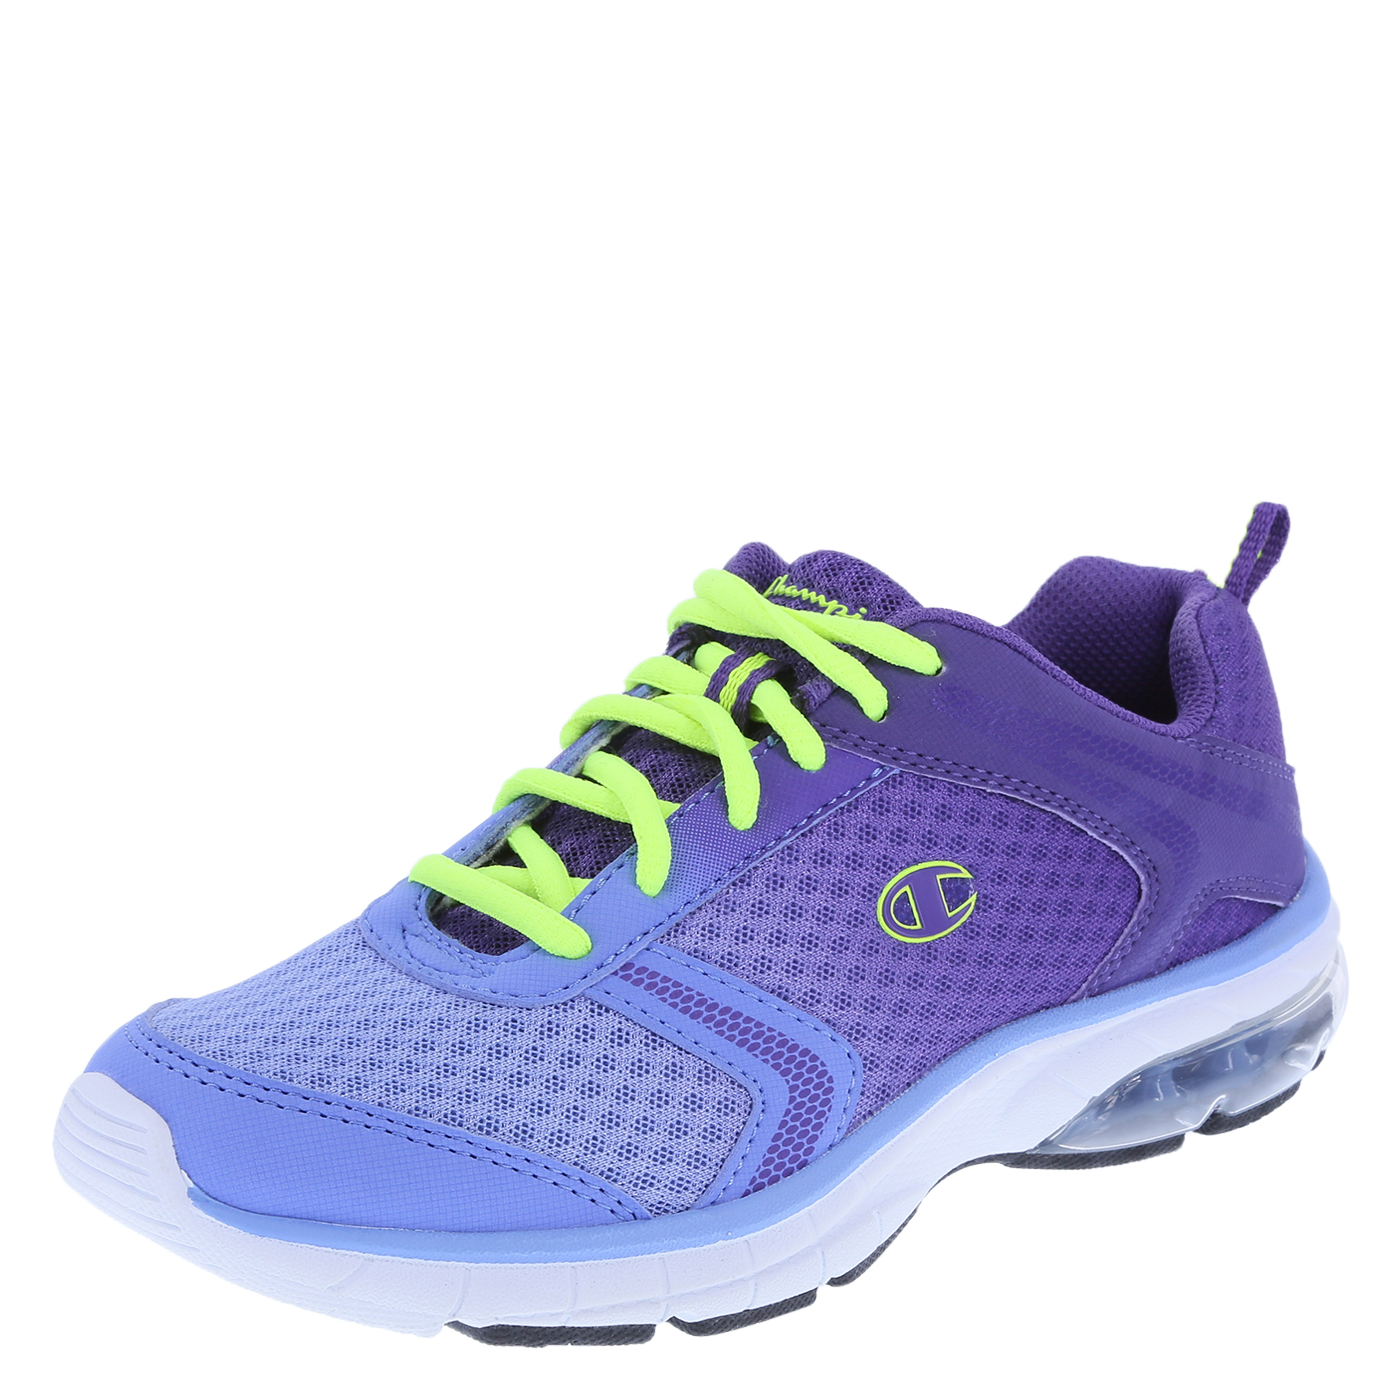 champion-launch-window-womens-running-shoes